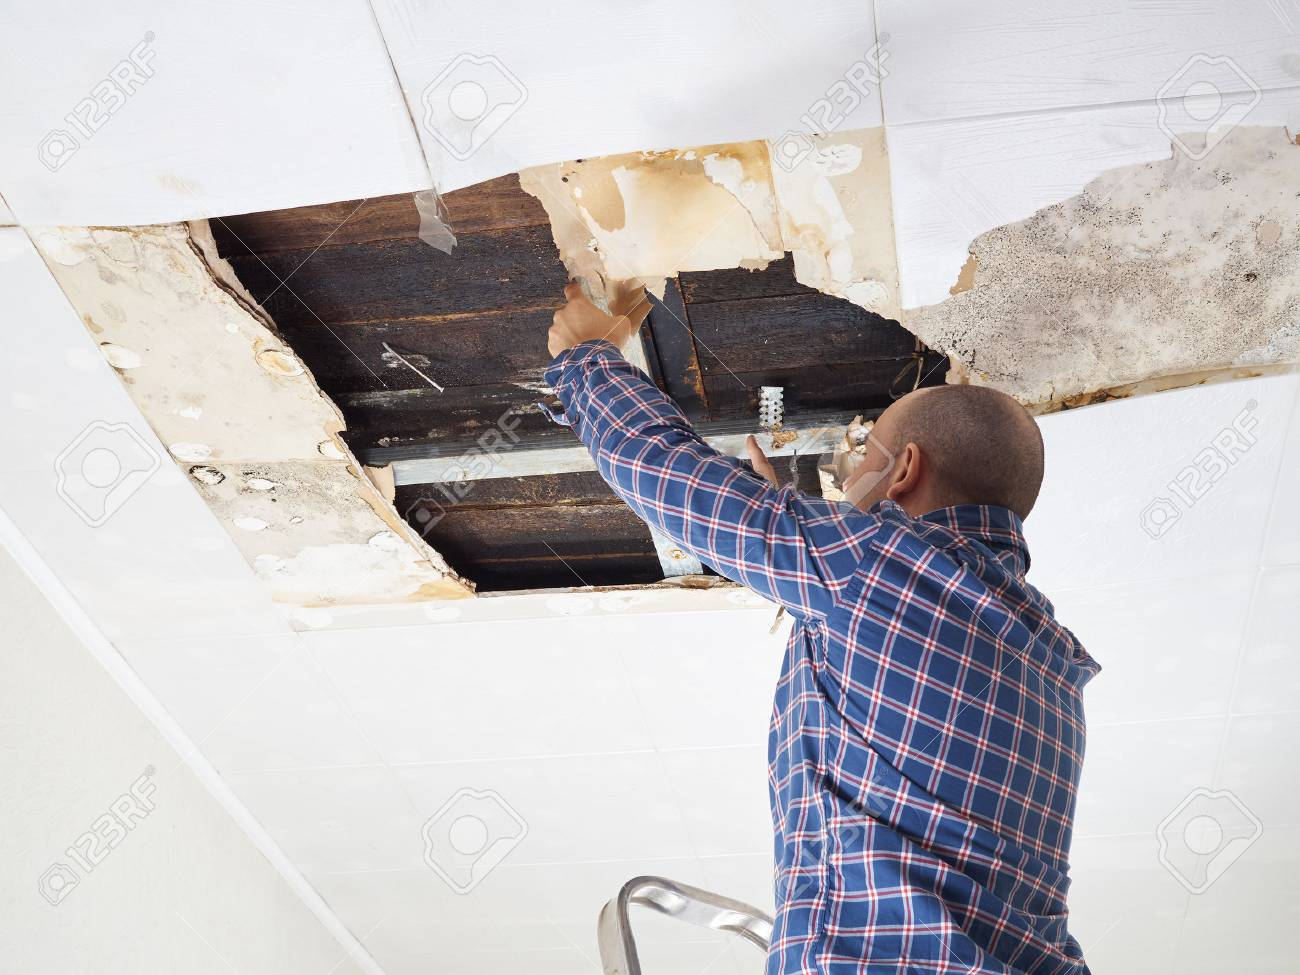 Man repairing collapsed ceiling. Ceiling panels damaged huge hole in roof from rainwater leakage.Water damaged ceiling . - 57035834